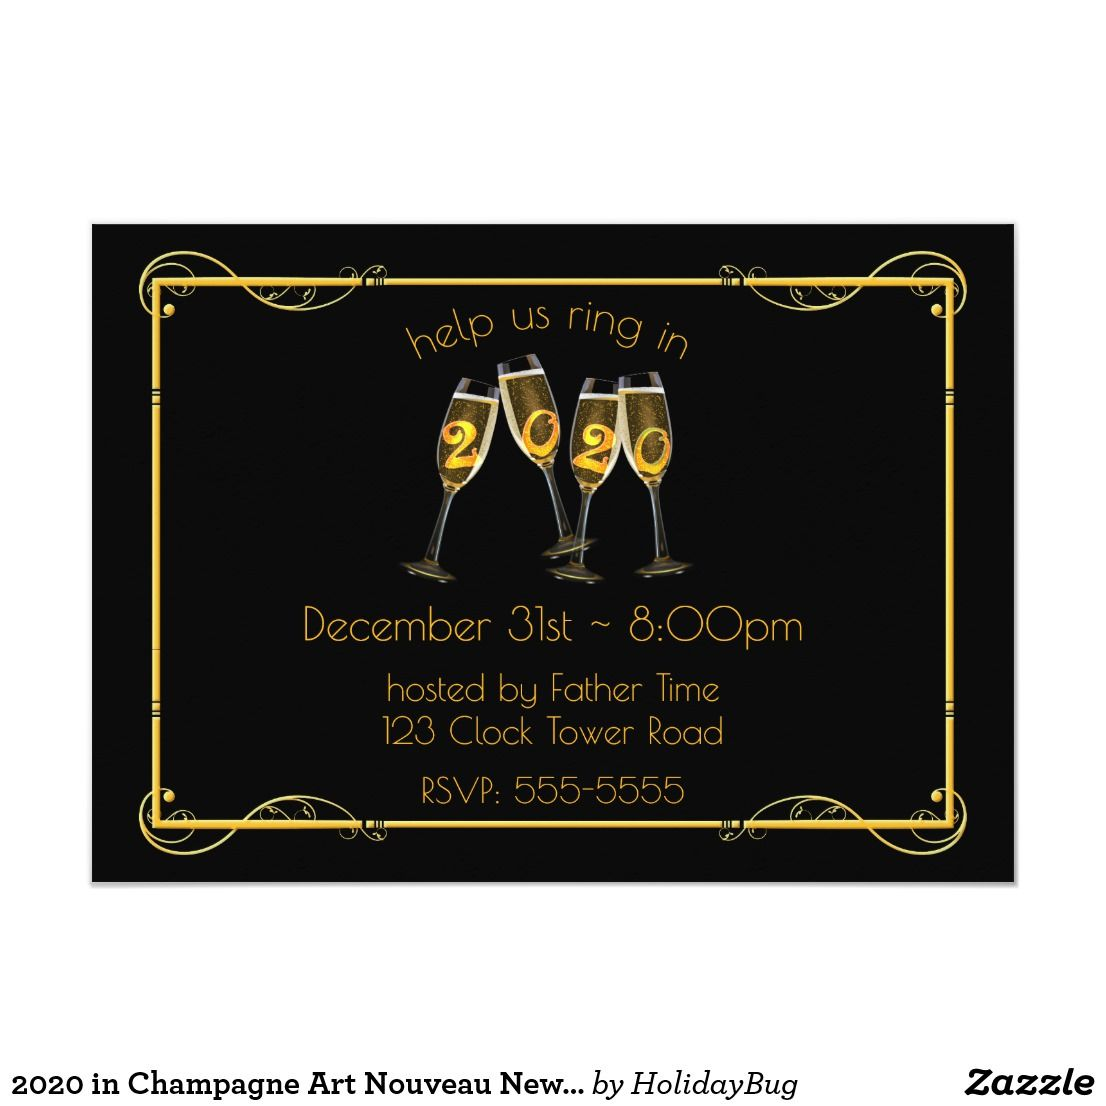 2020 in Champagne Art Nouveau New Year's Eve Invitation